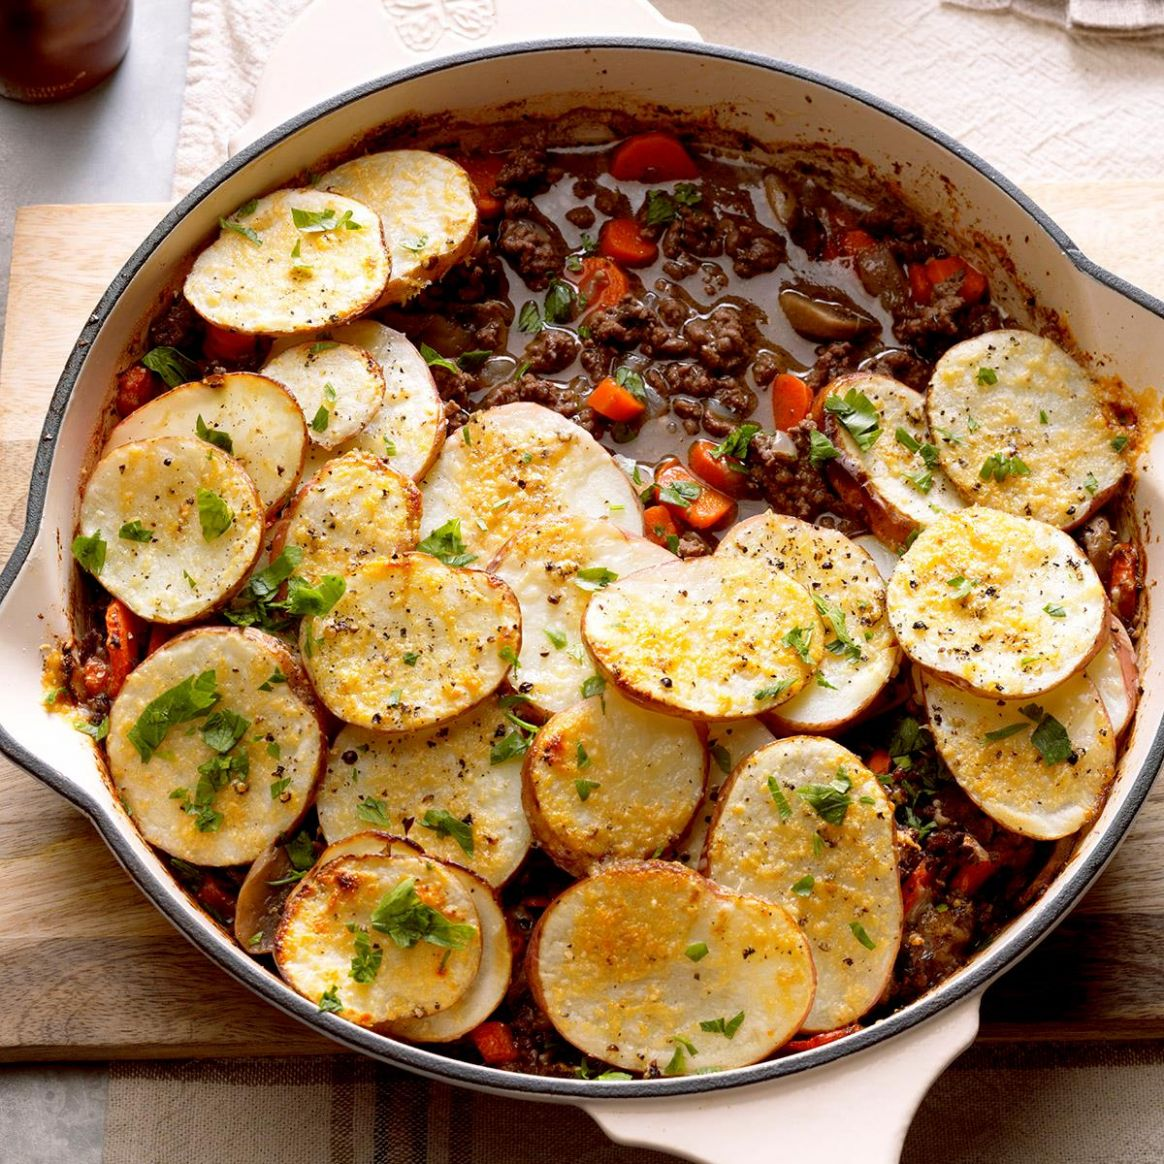 Potato-Topped Ground Beef Skillet - Food Recipes With Ground Beef